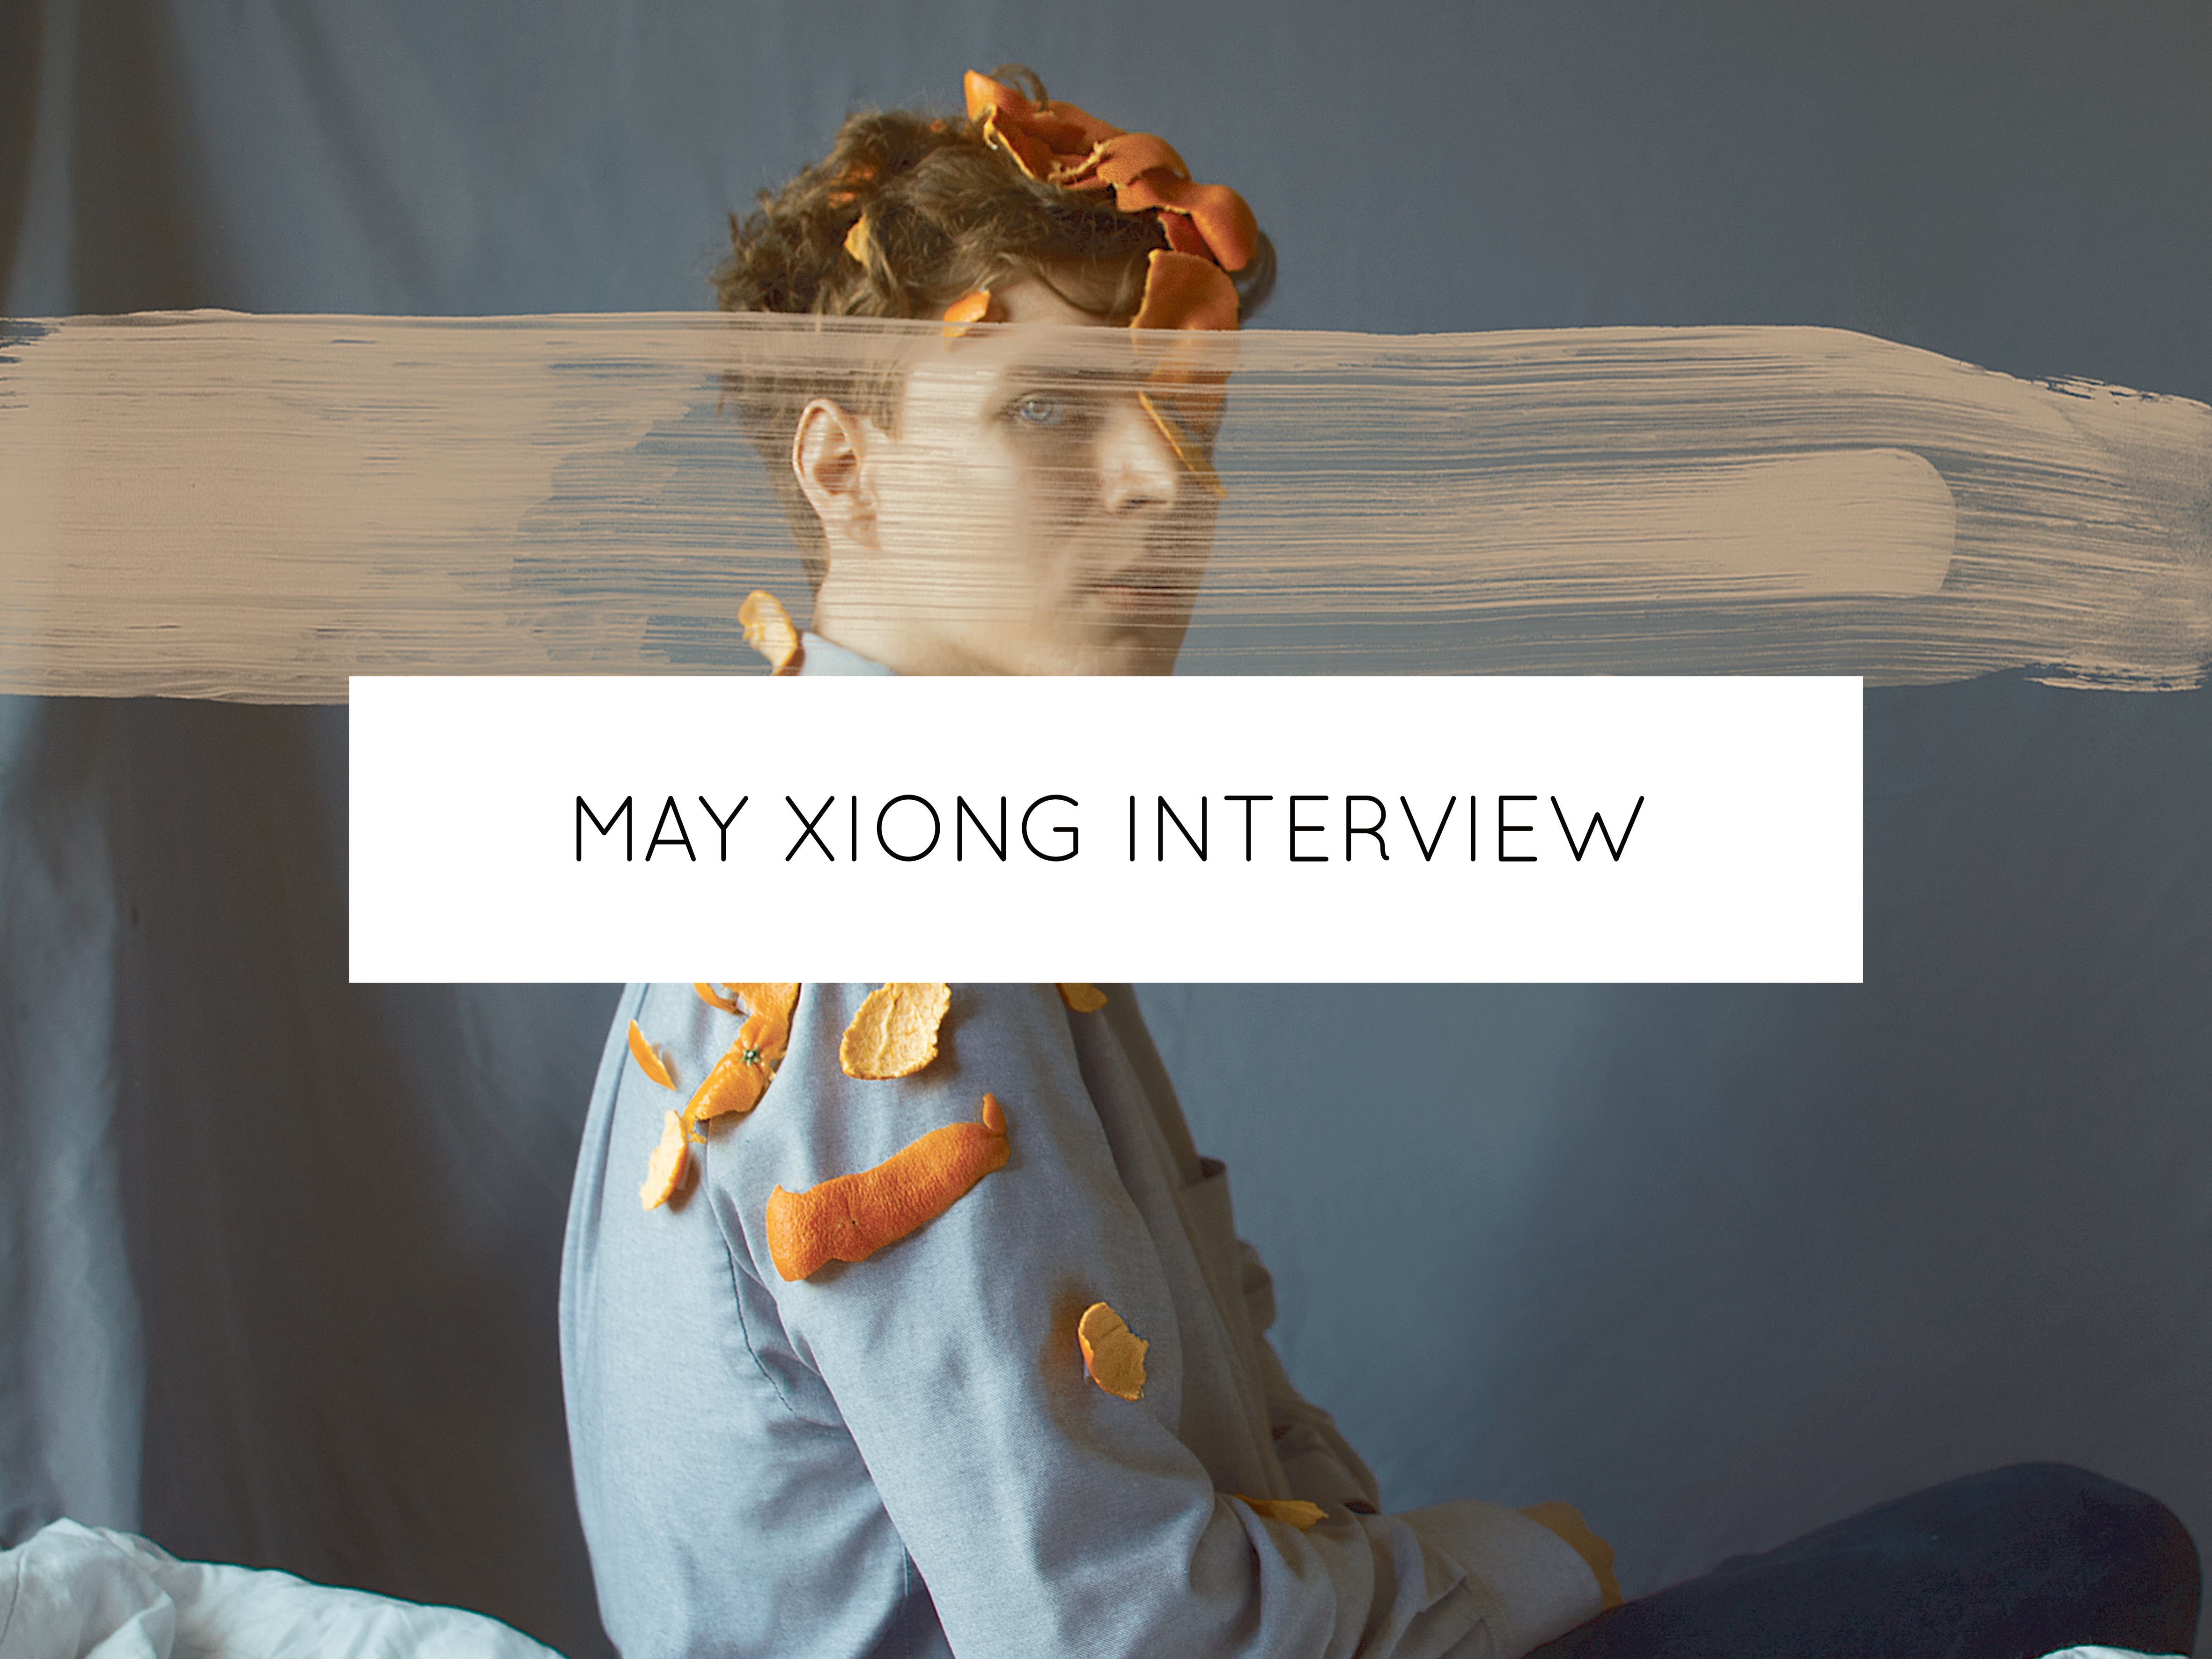 may xiong interview